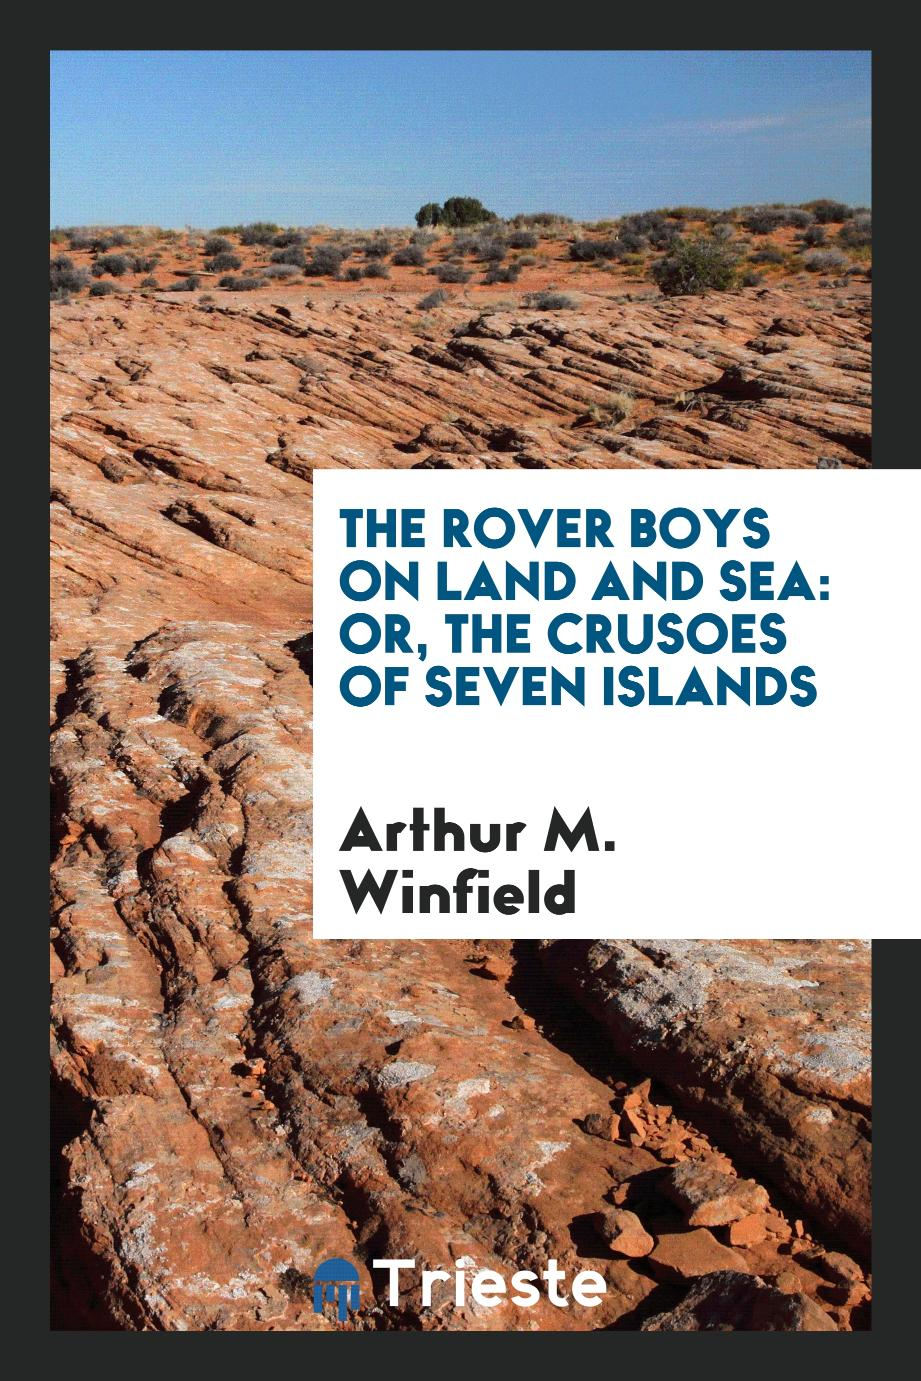 The Rover Boys on Land and Sea: Or, The Crusoes of Seven Islands